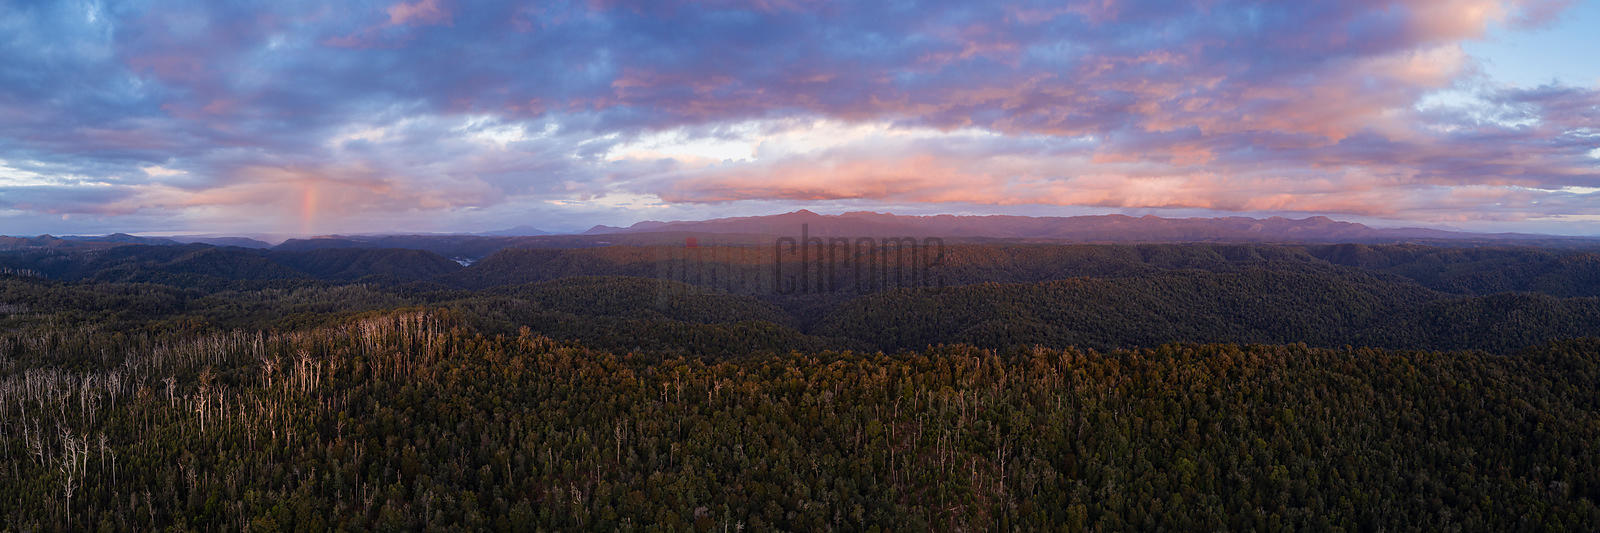 Tarkine Landscape with the Meredith Range in the Background at Sunset